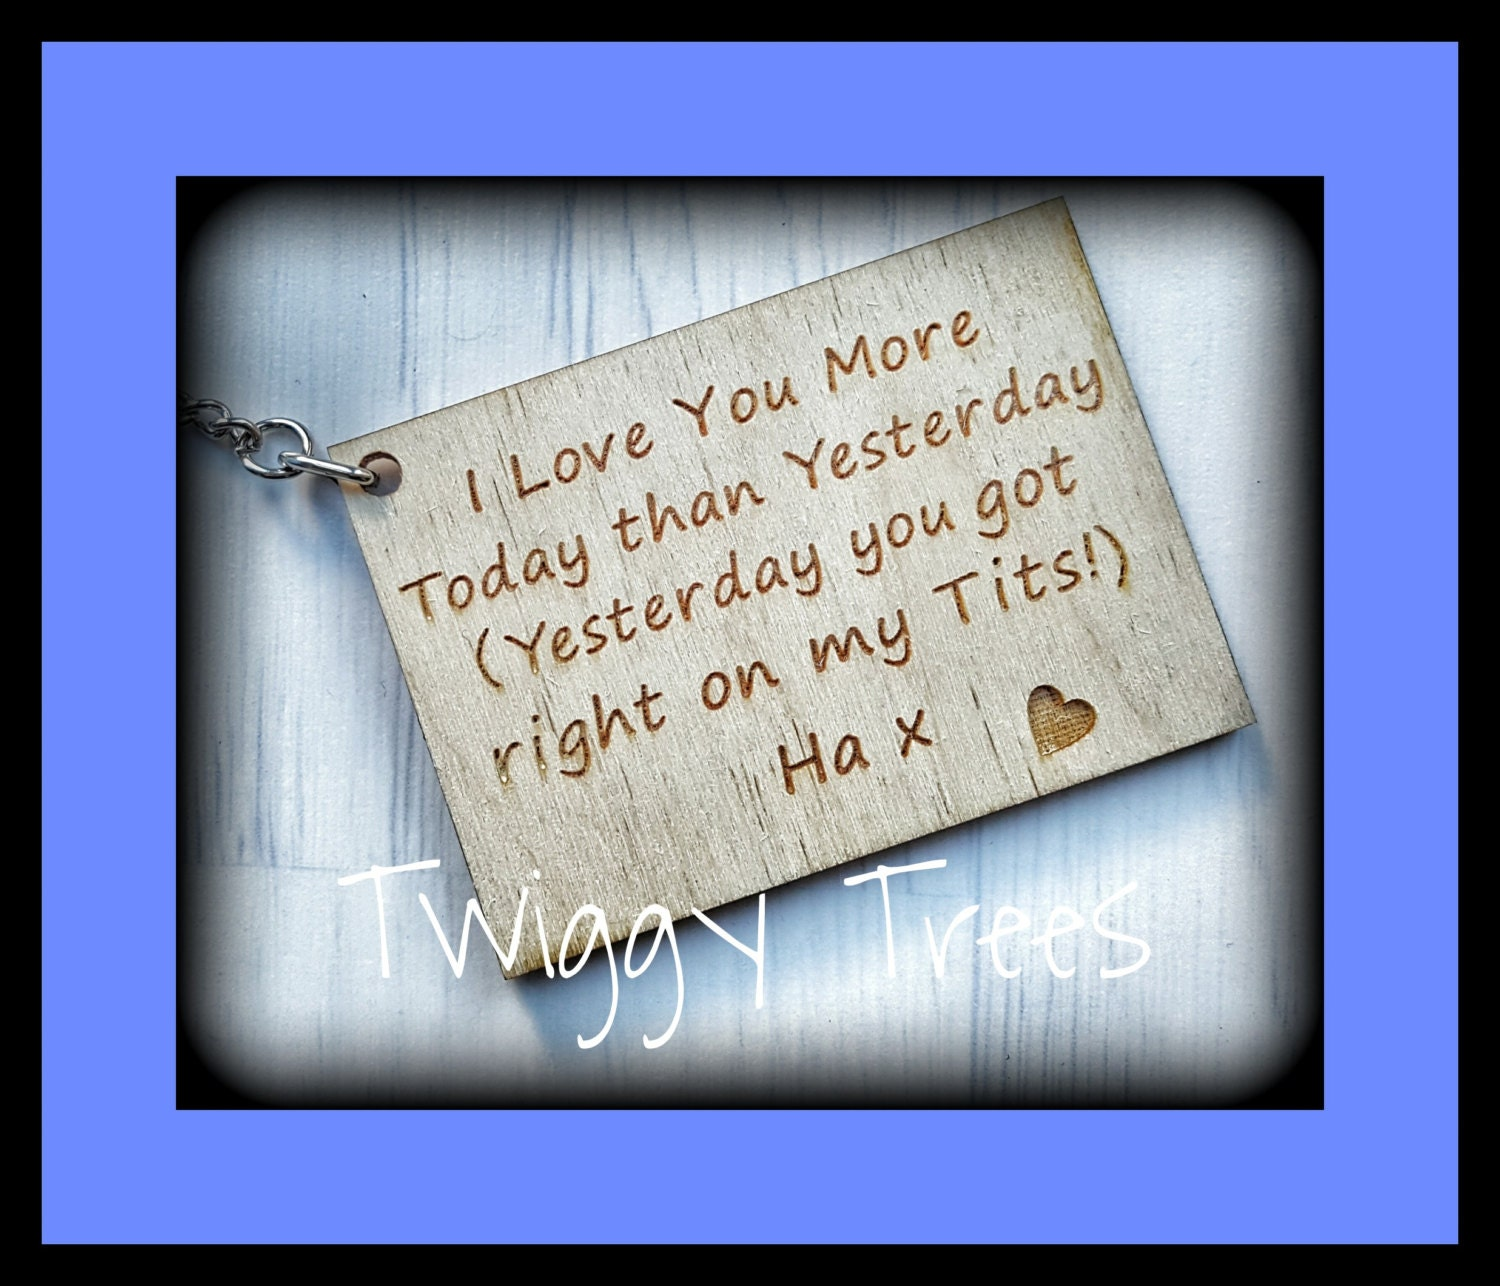 I Love You More Today Than Yesterday: I Love You More Today Than Yesterday Yesturday You By